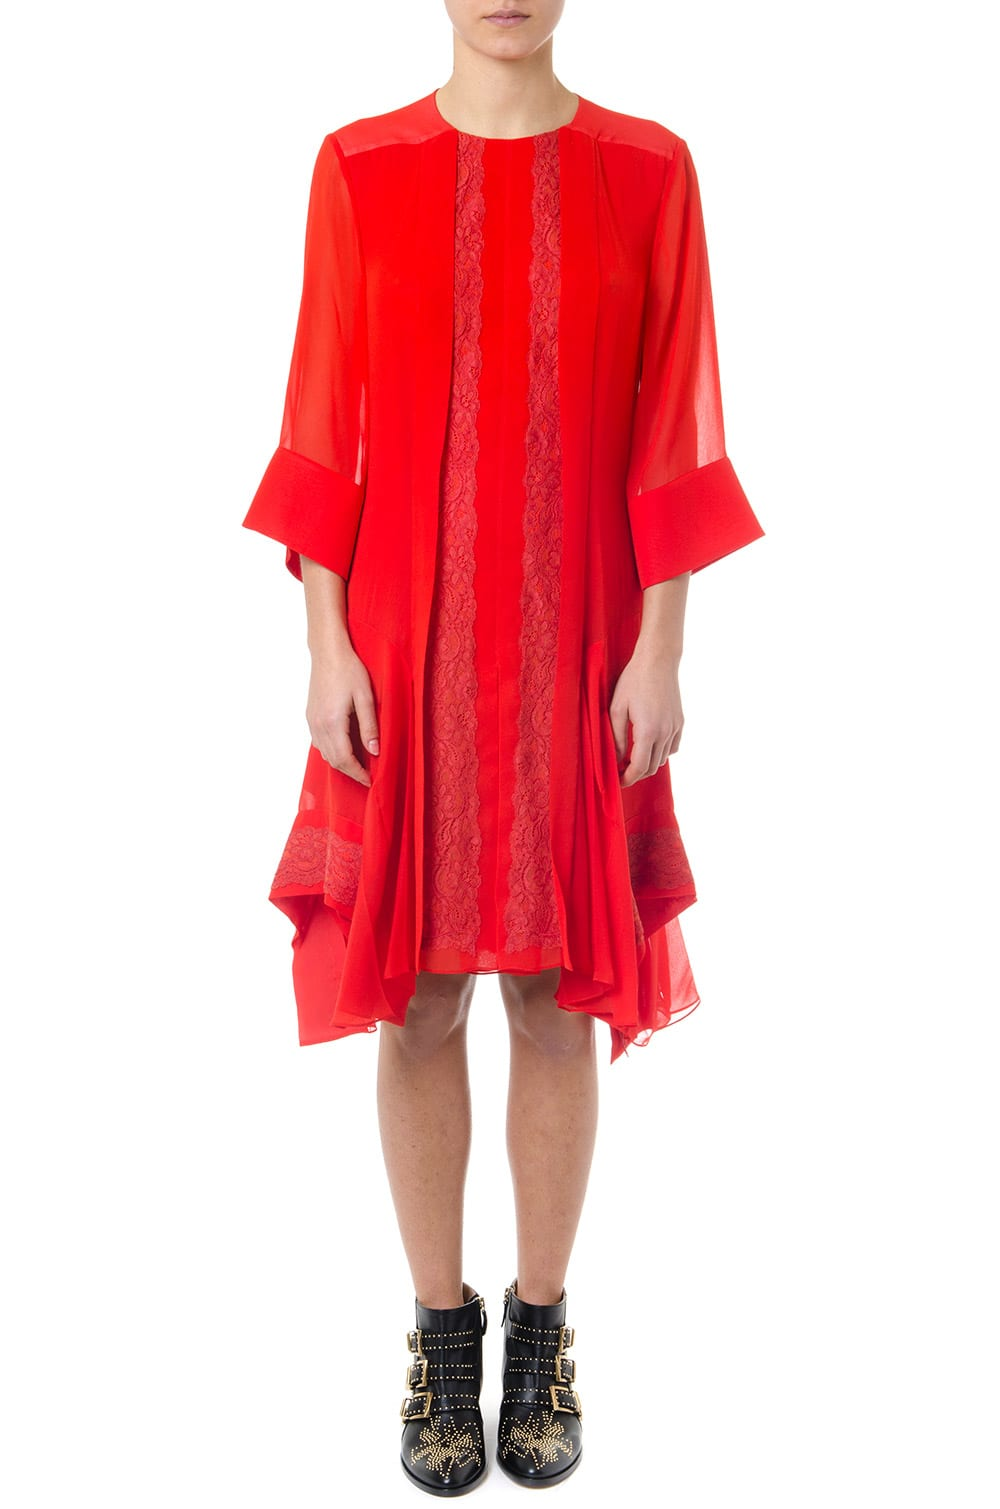 Chloé Red Embroidery Lace Flounces Dress